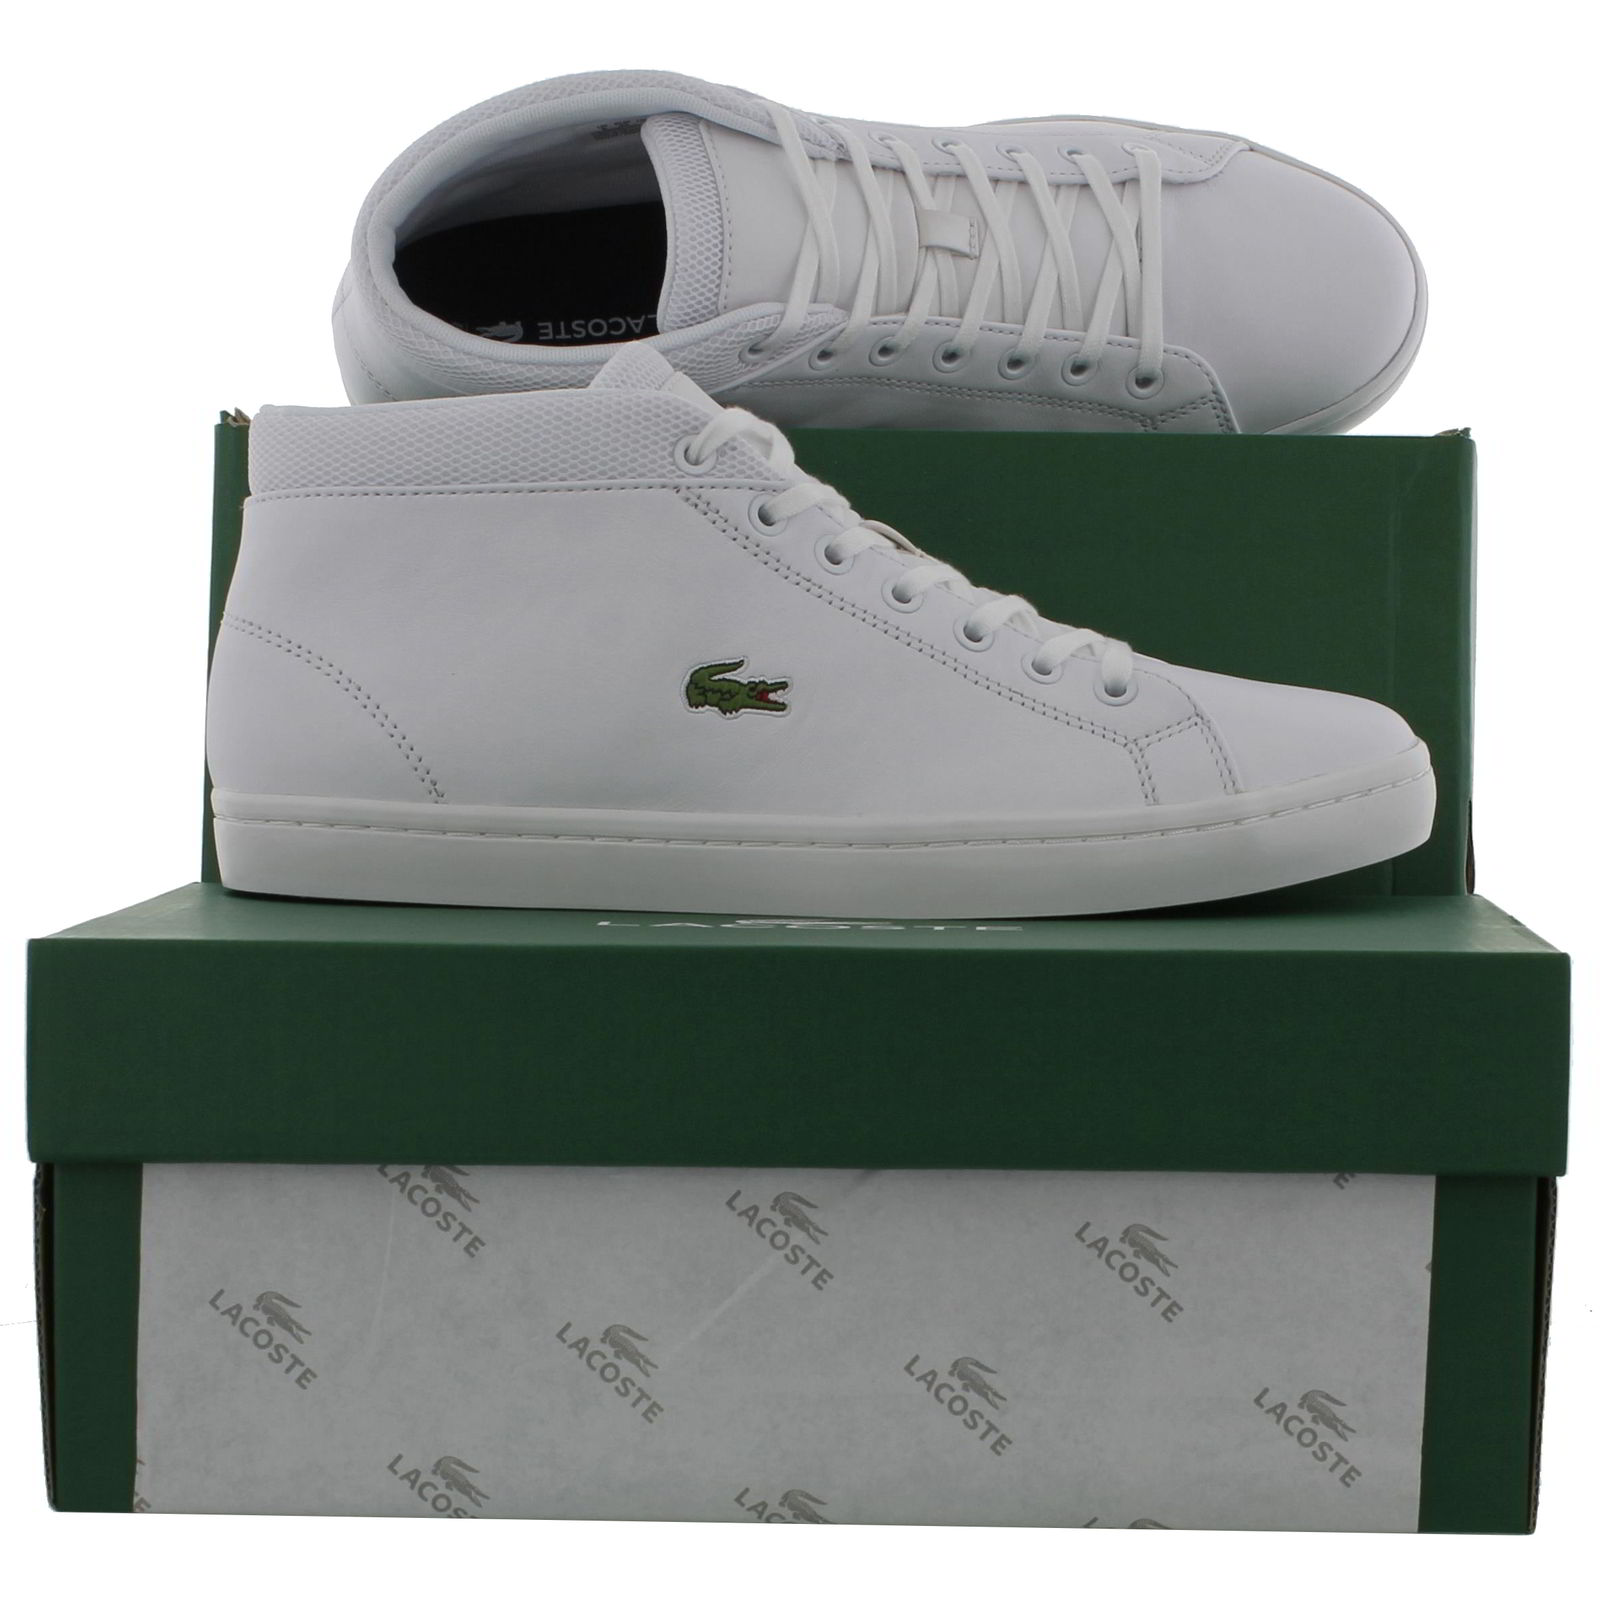 5f3aa410a Lacoste Mens Straightset Chukka 316 3 SPM White Trainers Size UK 9 ...